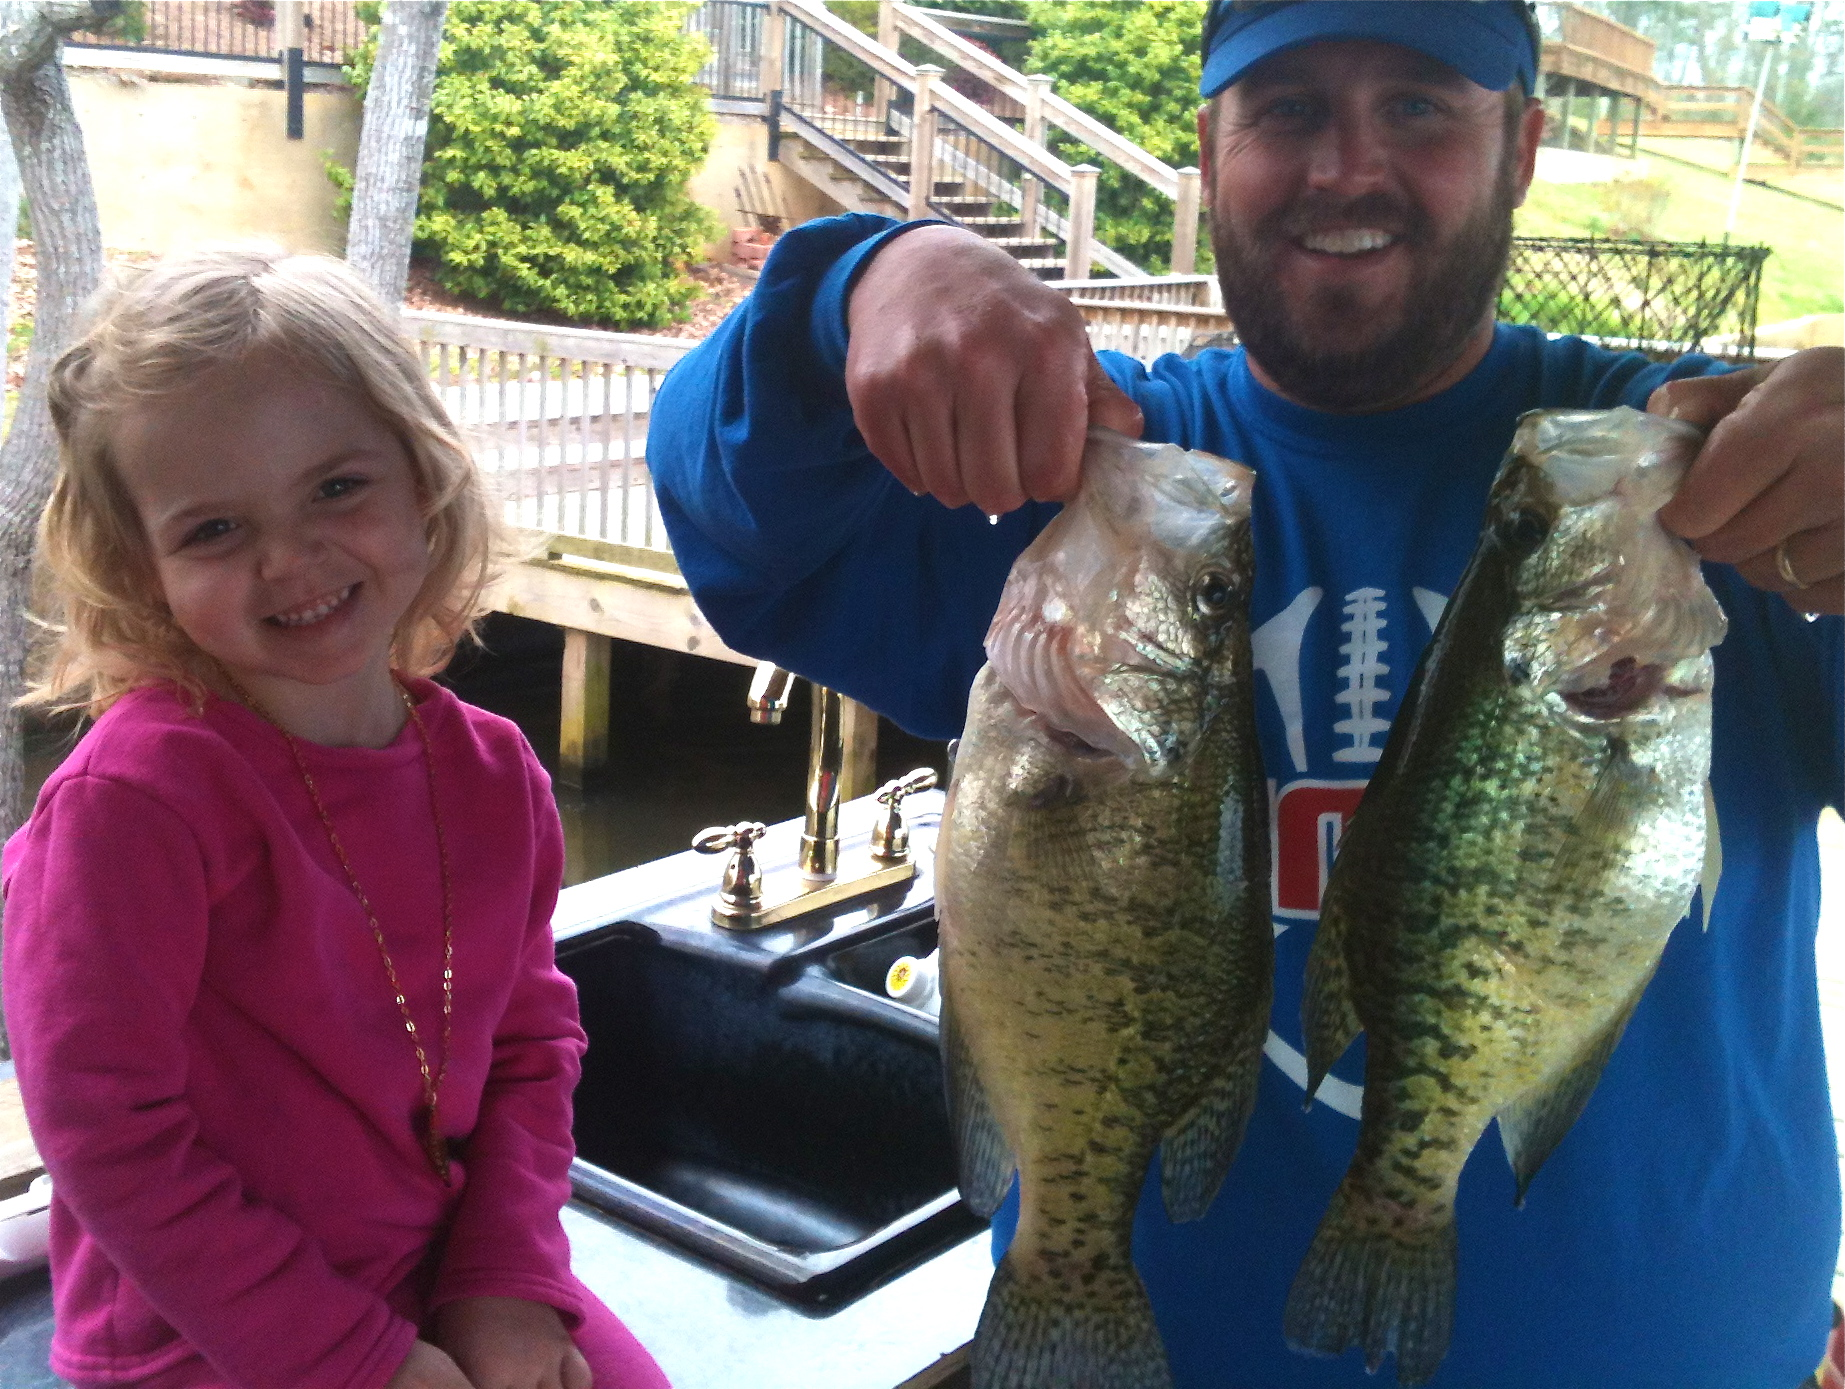 Wind aided fishing report lake darbonne life for Lake d arbonne fishing report